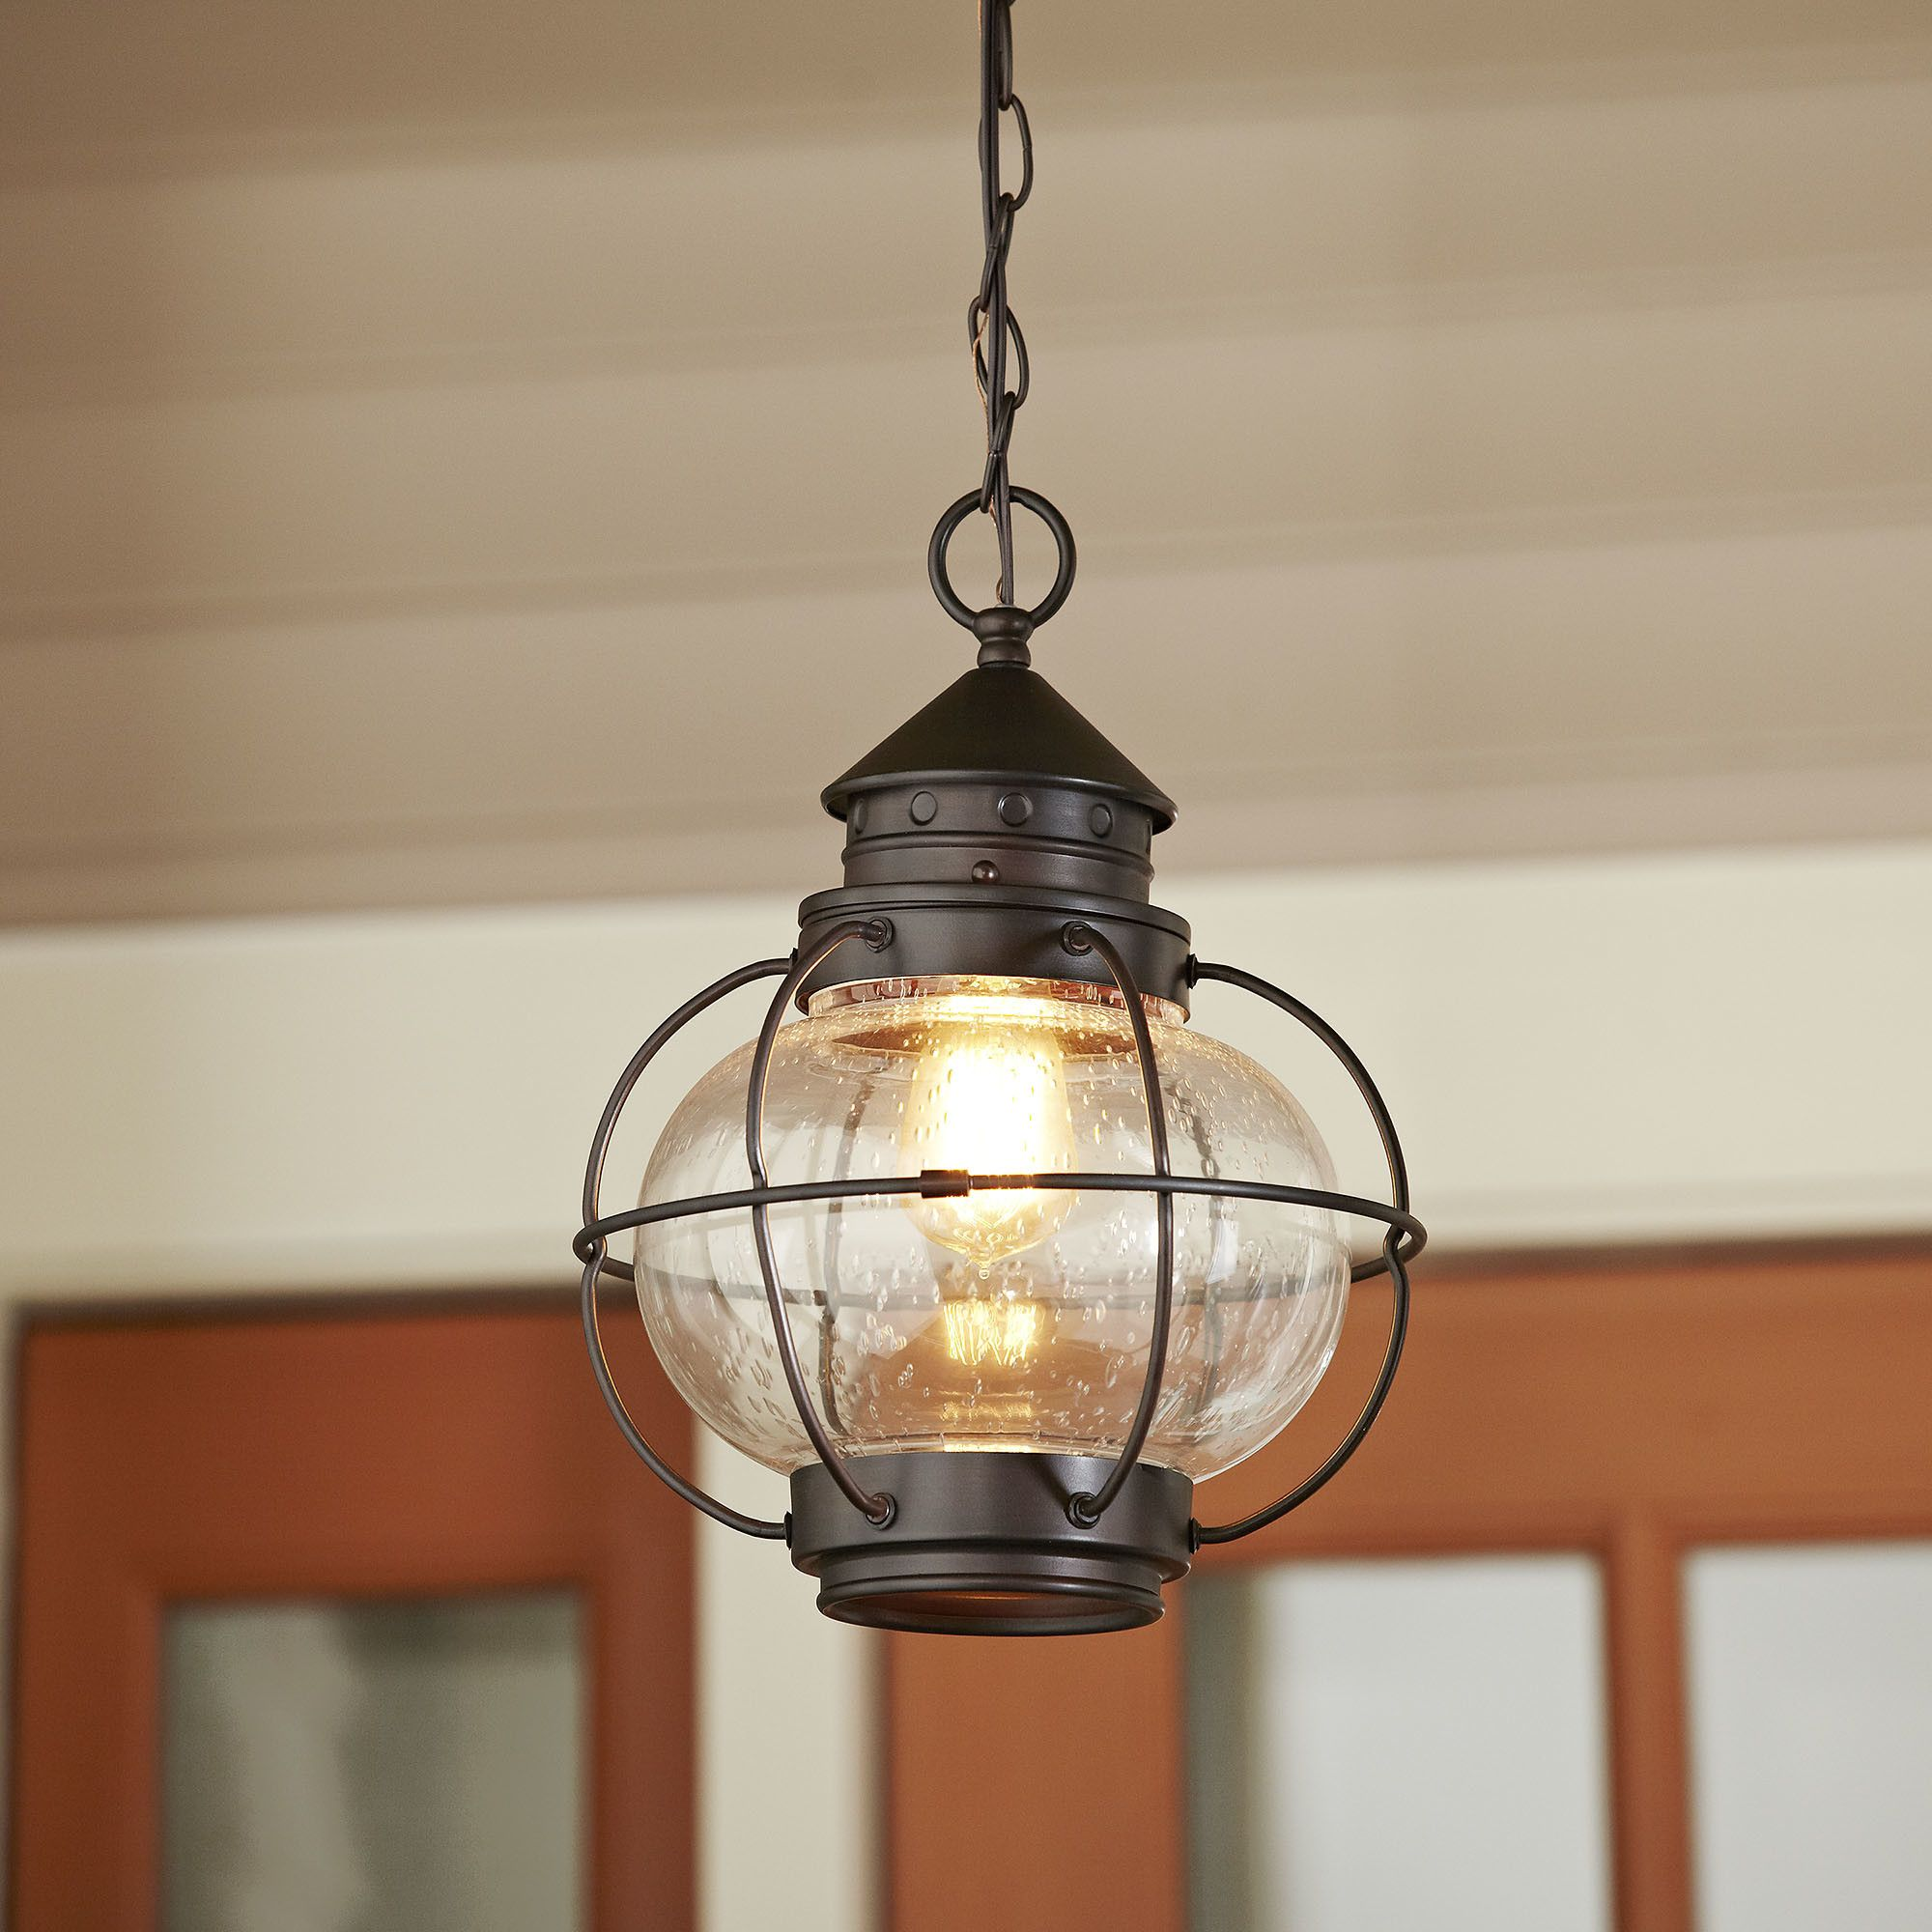 Hastings 1 Light Outdoor Hanging Lantern Outdoor Hanging Lanterns Outdoor Hanging Lights Hanging Lanterns